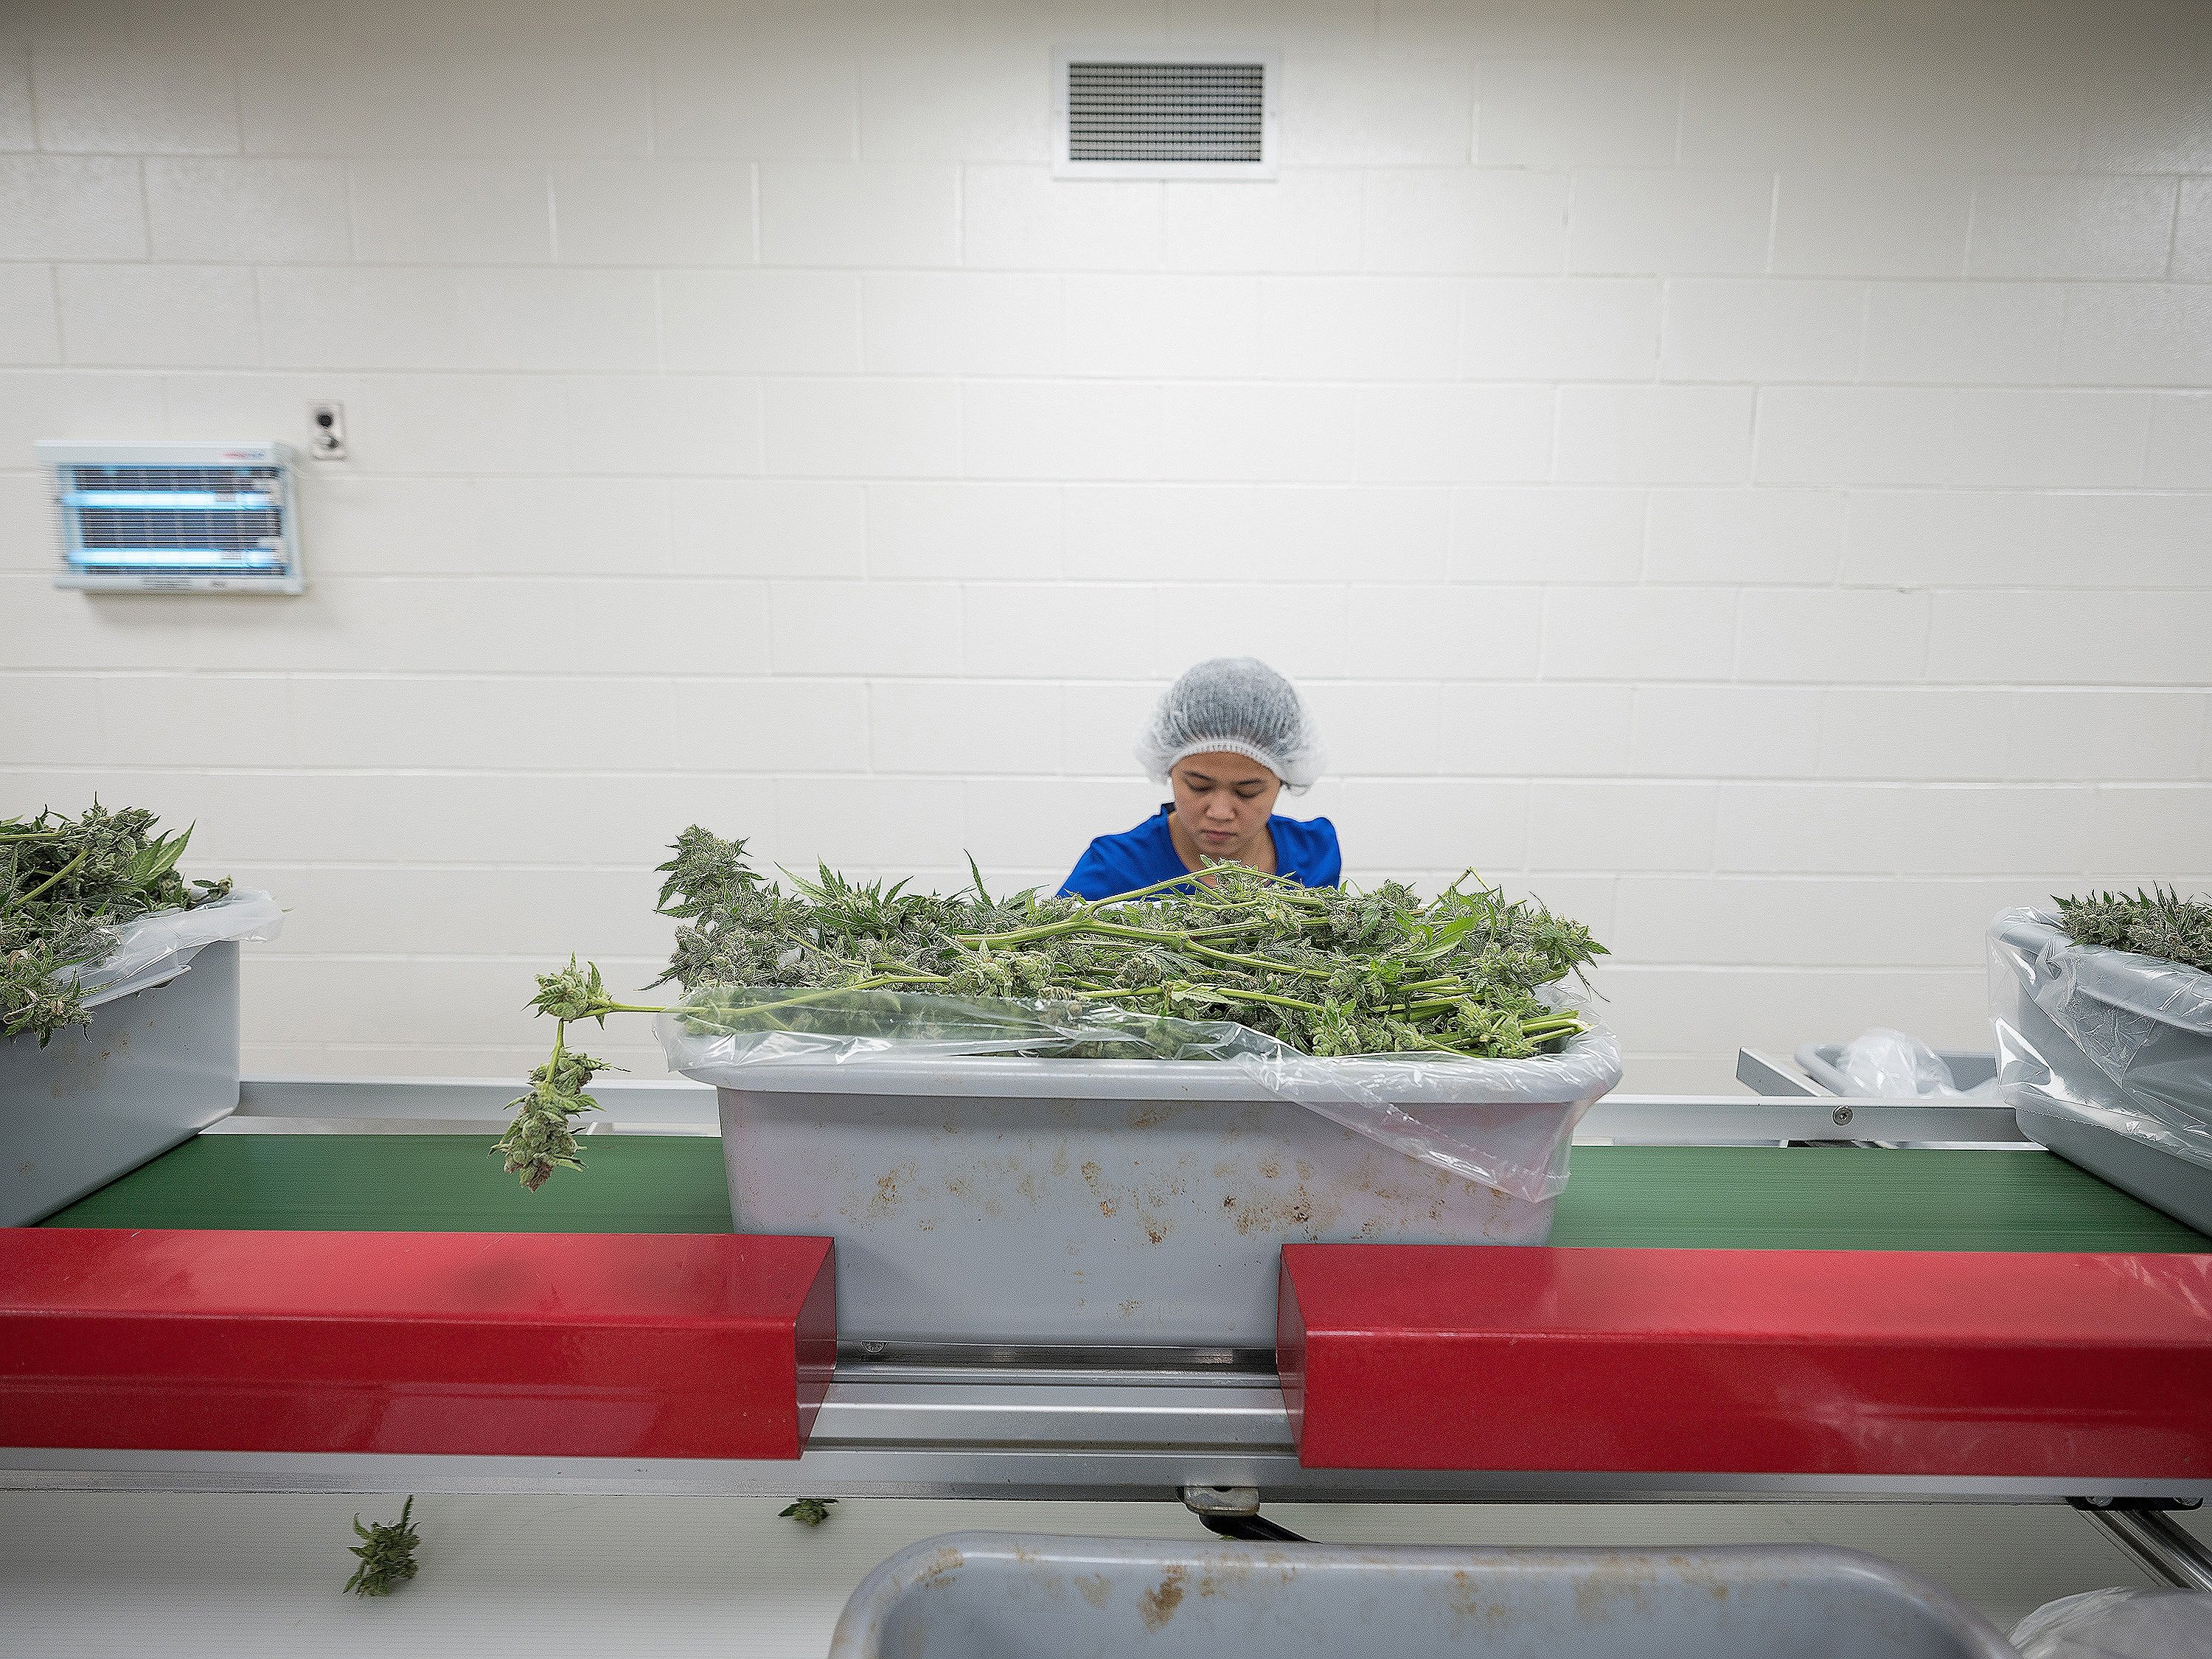 An Aphria worker strips leaves off cannabis stems in a clipping room at the company's facility in Leamington, Ont. (Evan Mitsui/CBC)